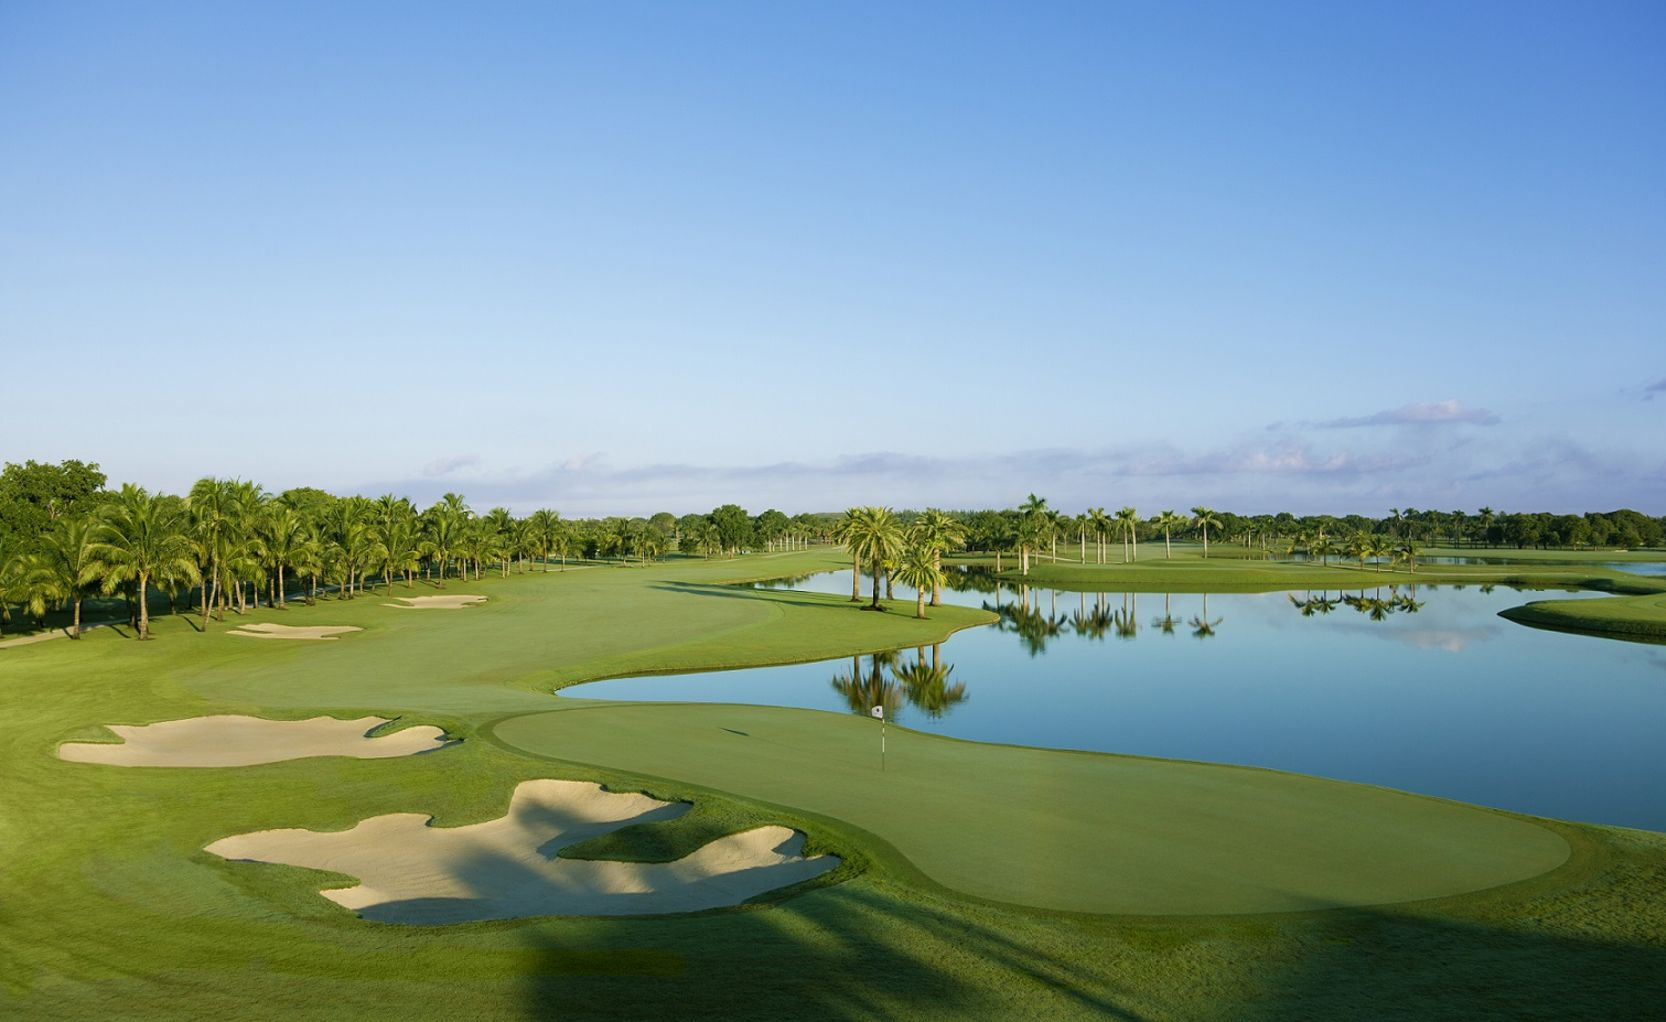 #3 Blue Monster, Trump National Doral, Florida - Most Expensive Golf Courses in the World